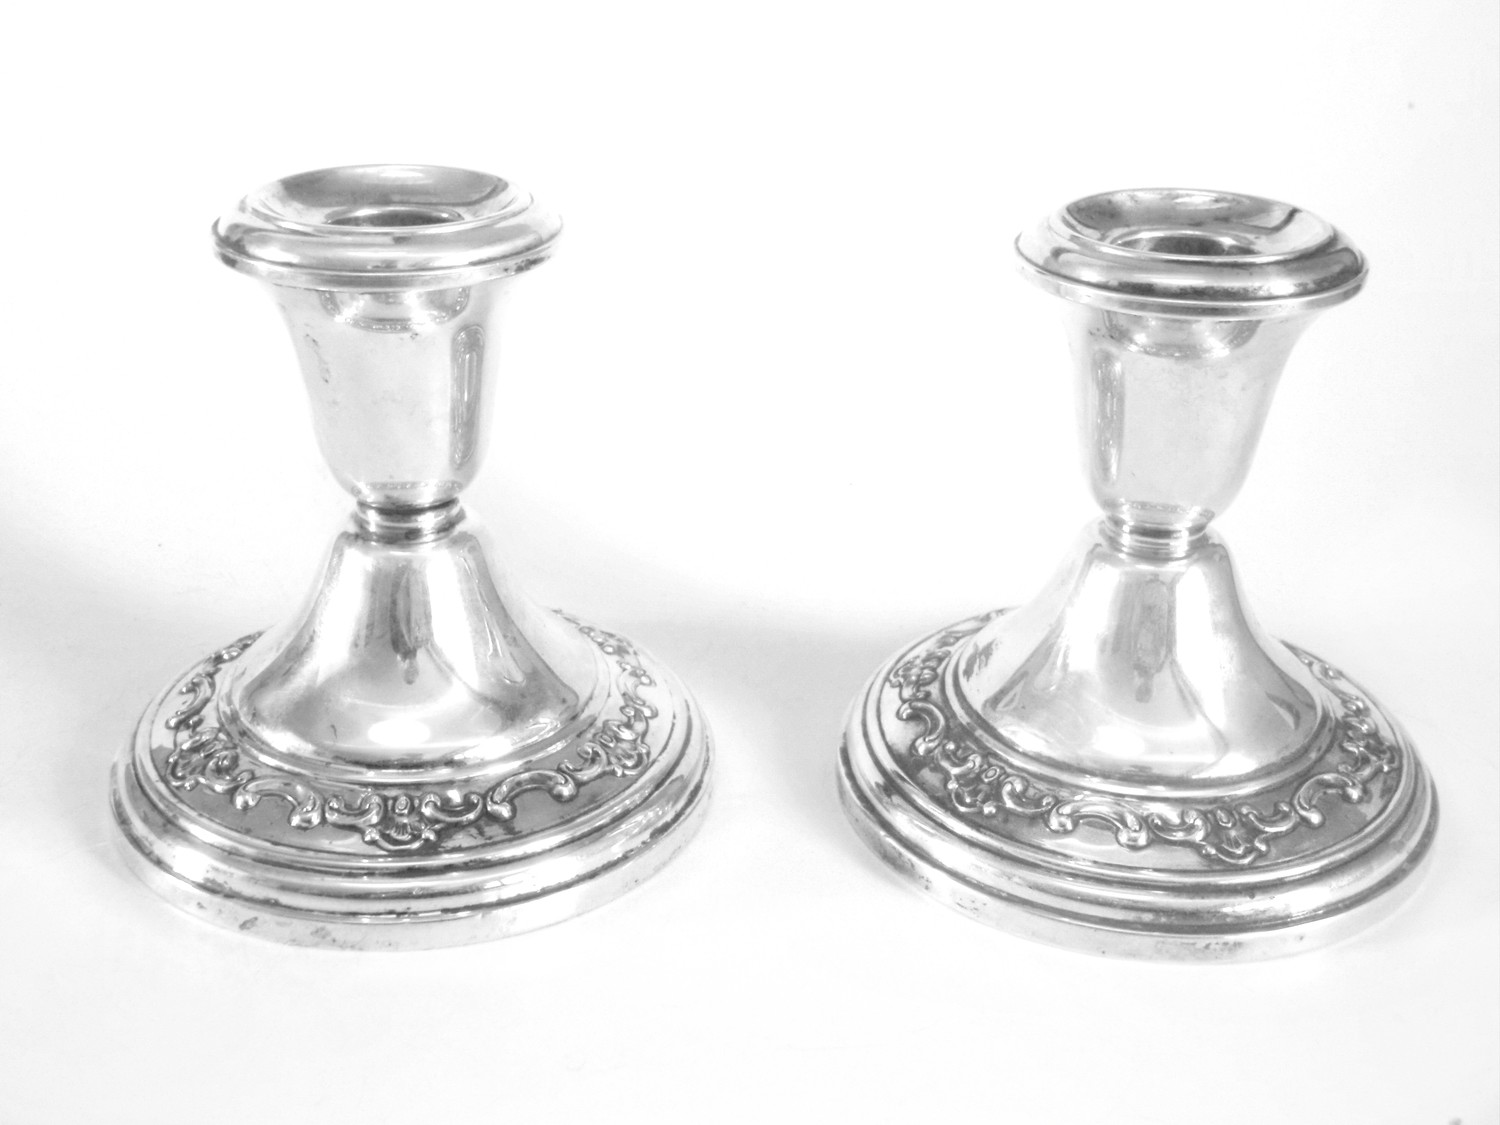 2 Gorham Sterling Silver Candle Holders with Floral Swag Details